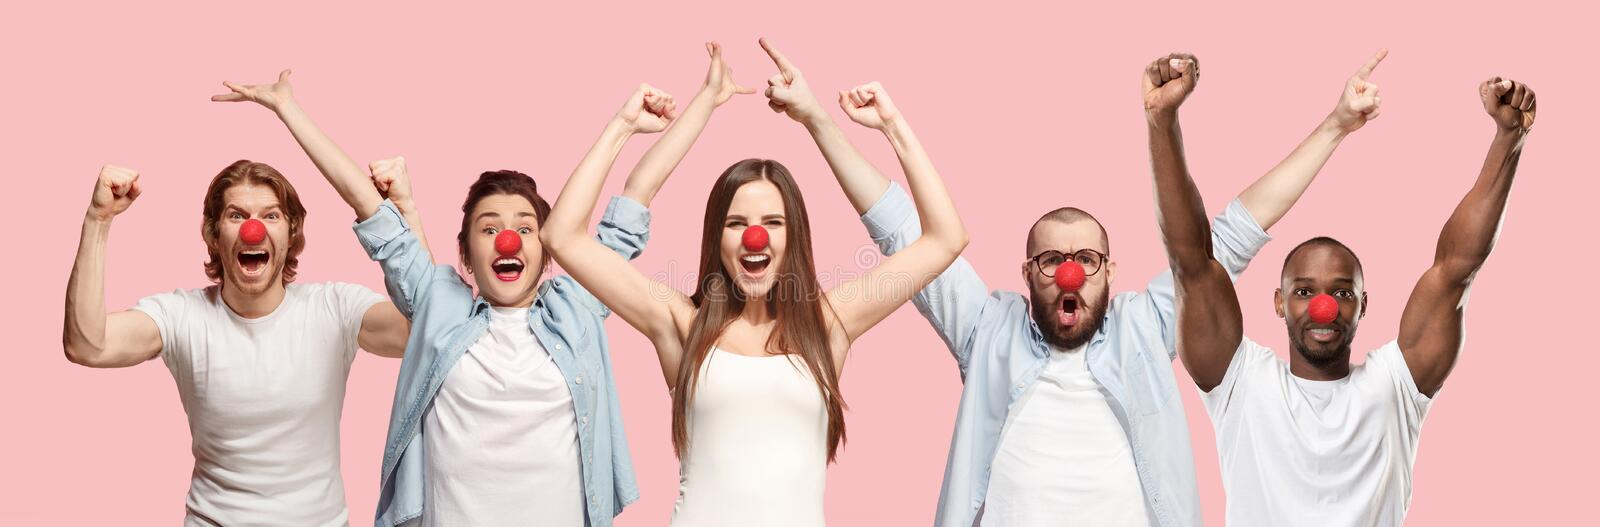 Portrait of young people celebrating red nose day on coral background stock image